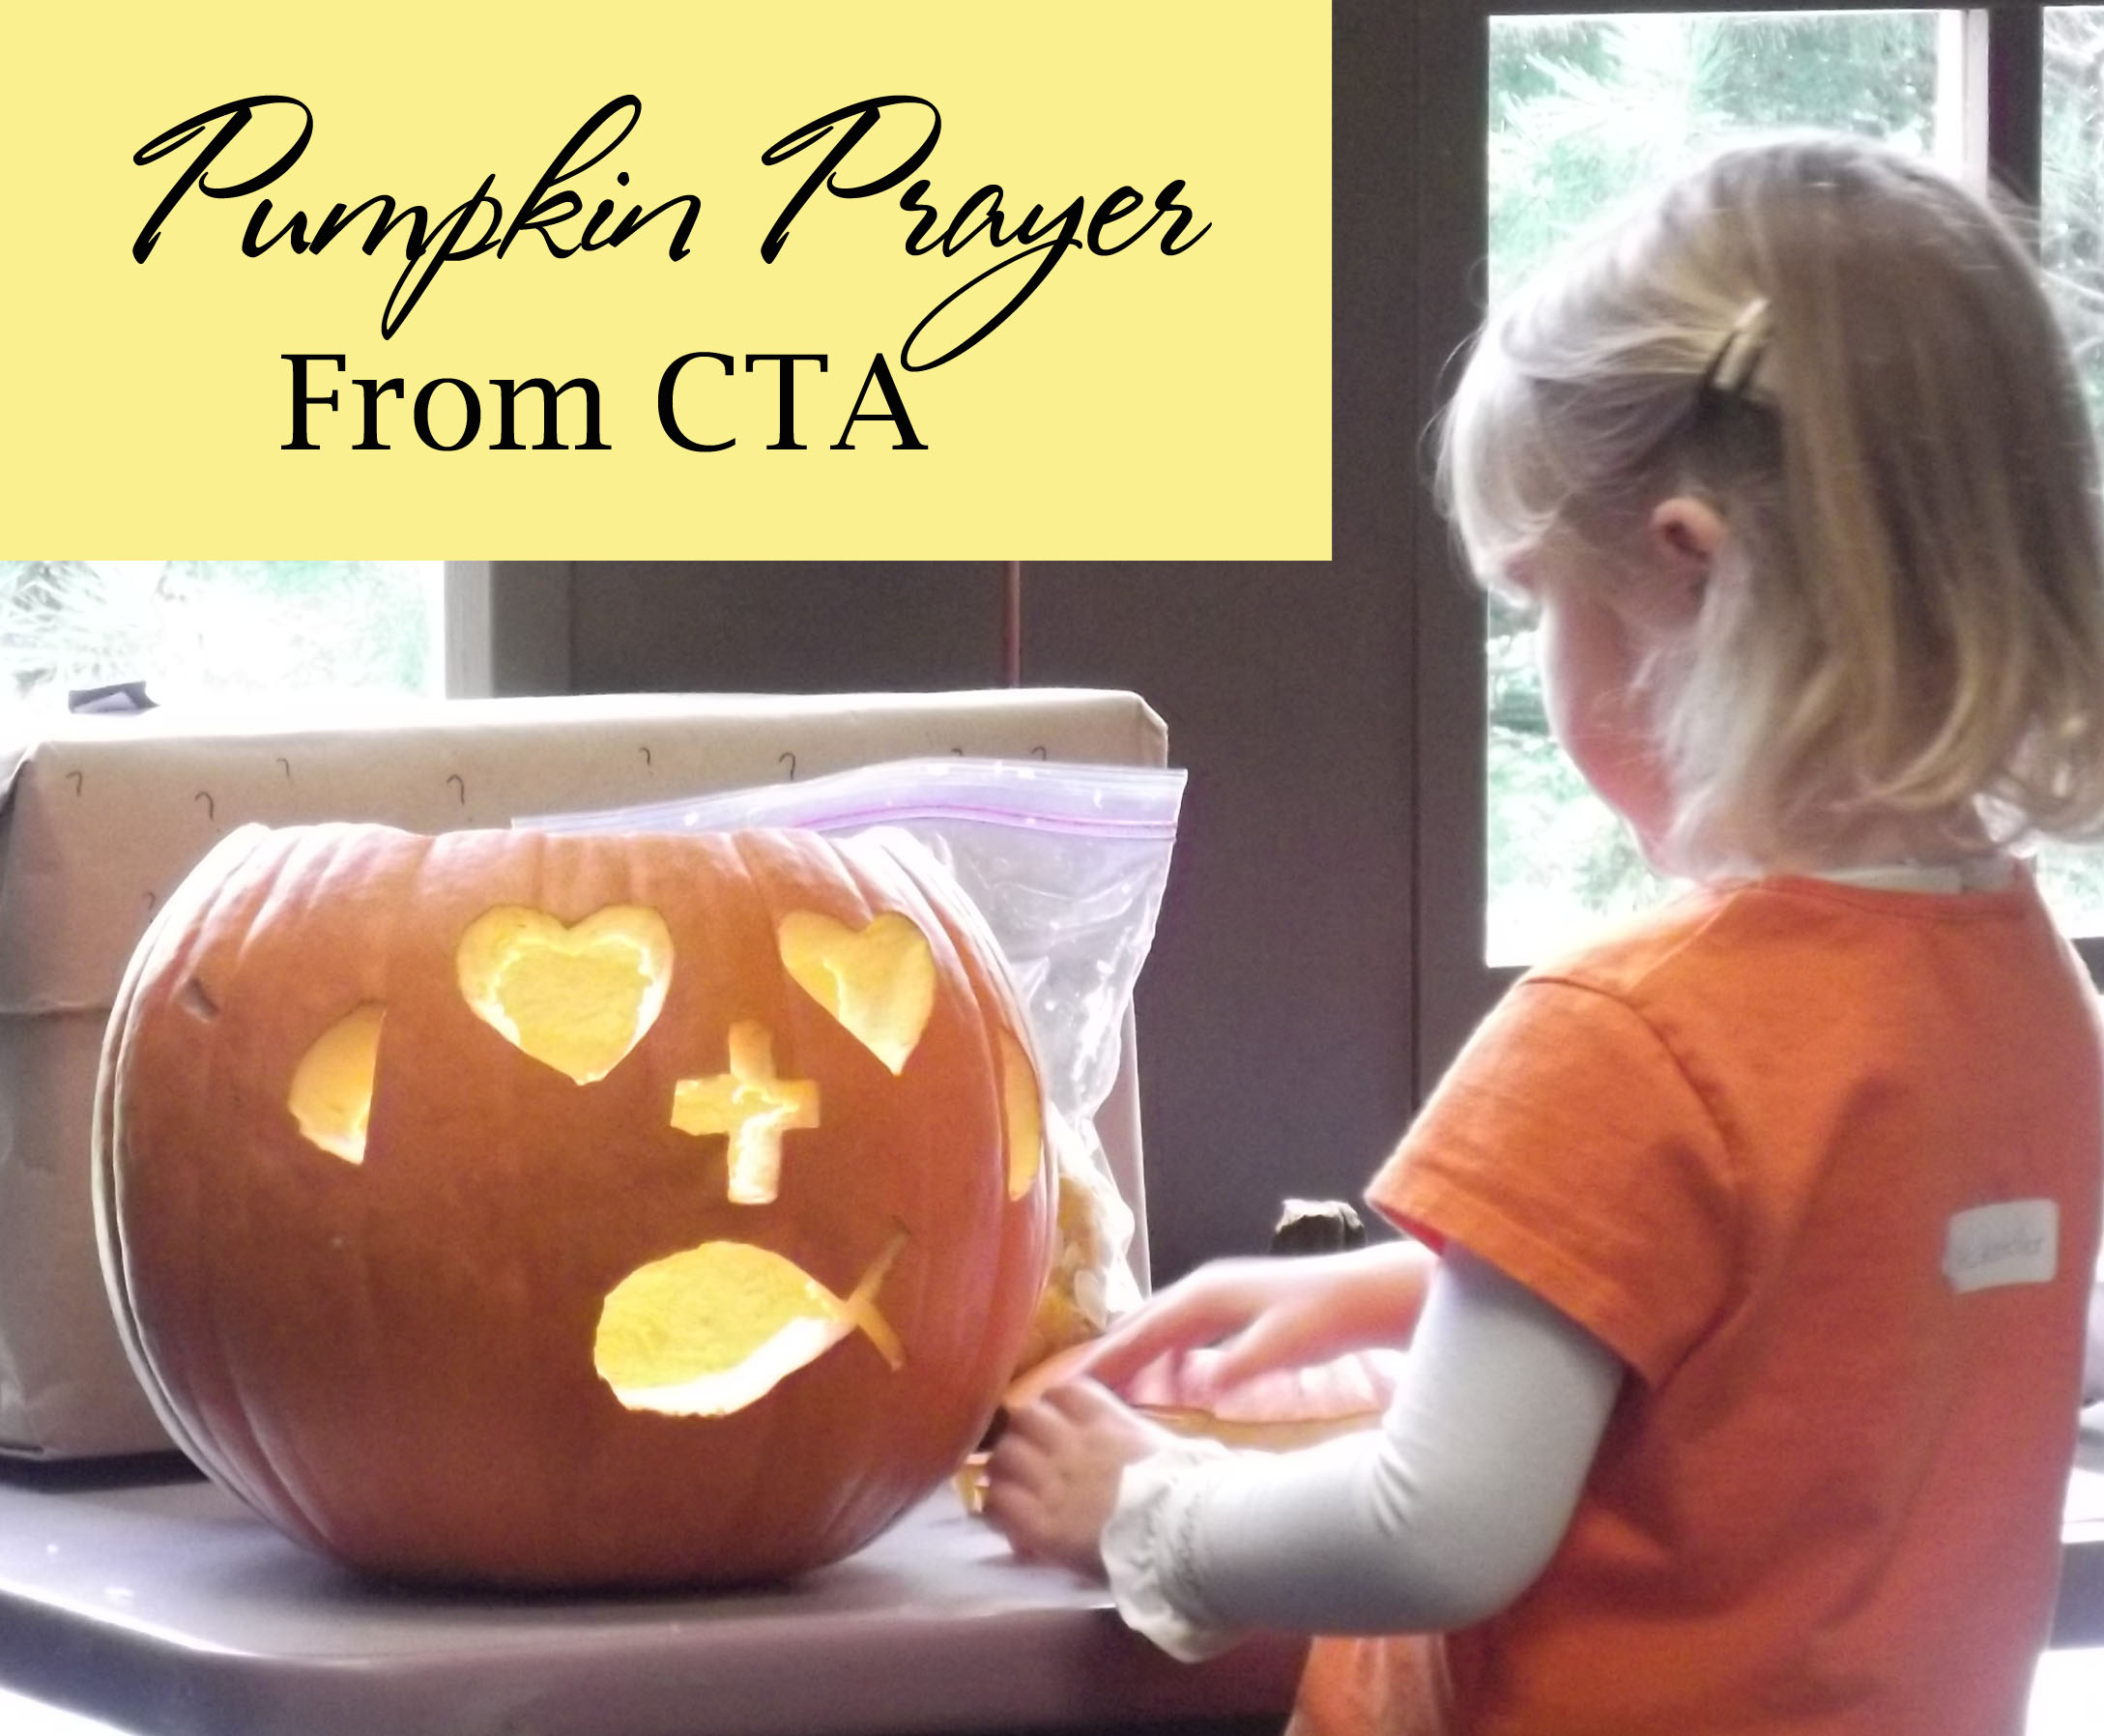 image regarding Pumpkin Prayer Printable identified as Pumpkin Prayer Poem Celebrating Holiday seasons